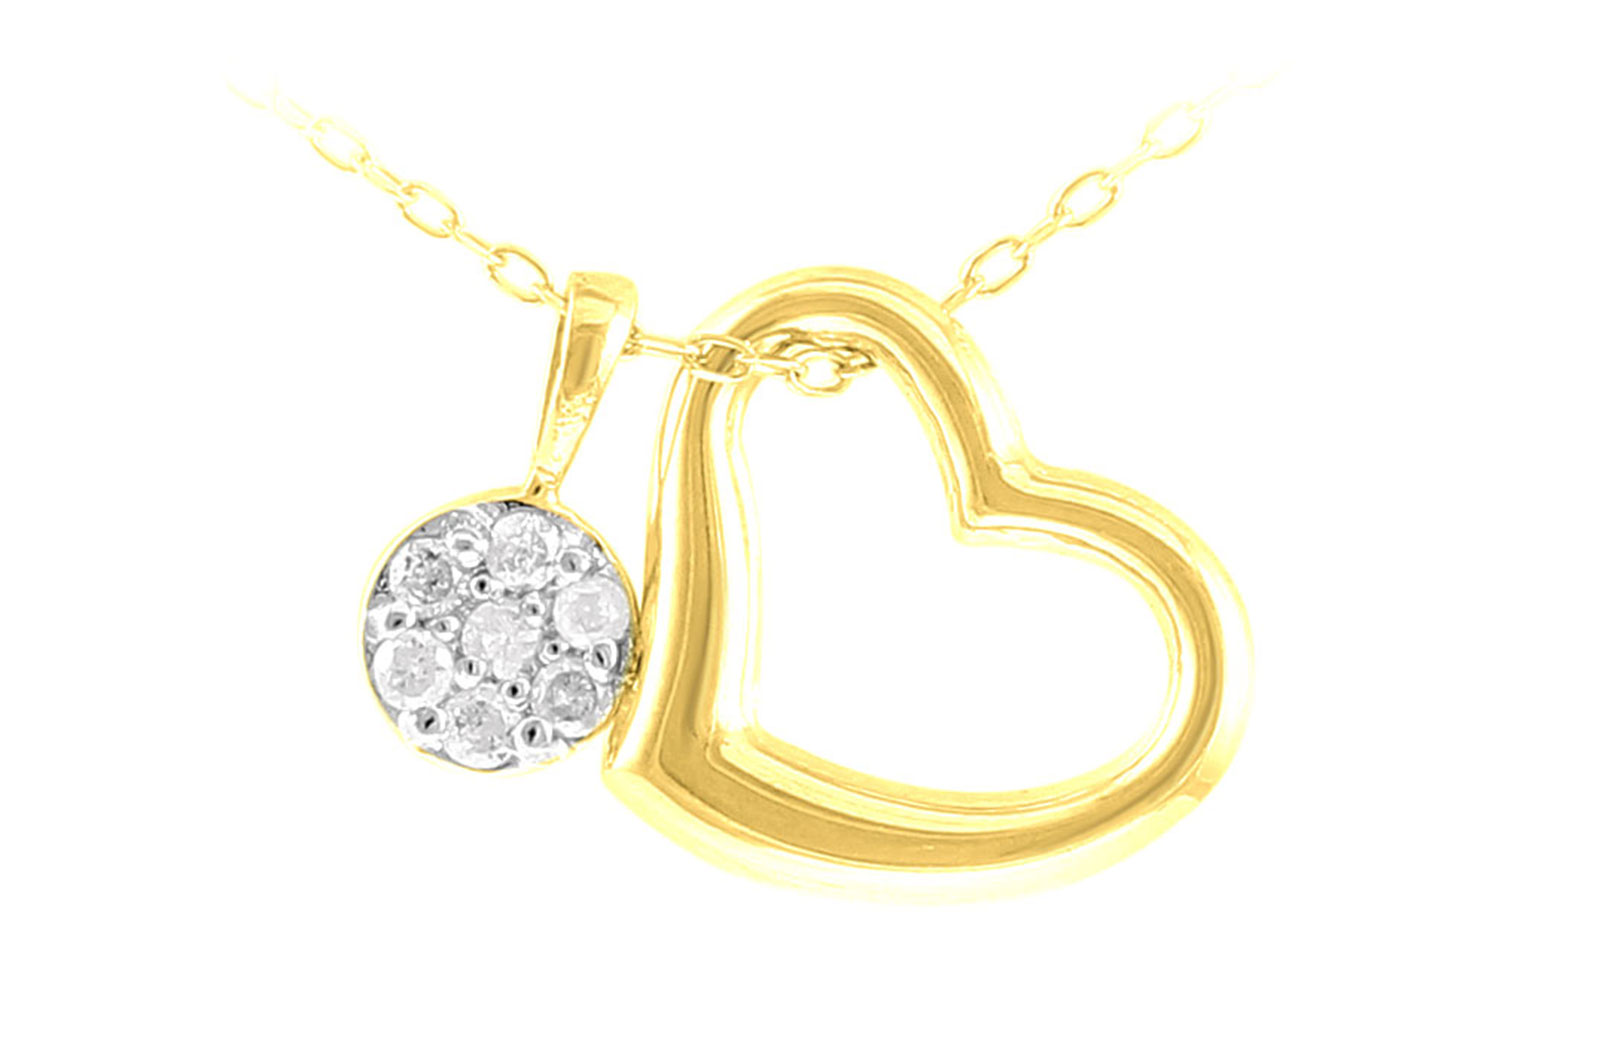 Vera Perla  18K Yellow and White Gold 0.07Cts Genuine Diamonds  Solitaire and Opened Heart  Necklace